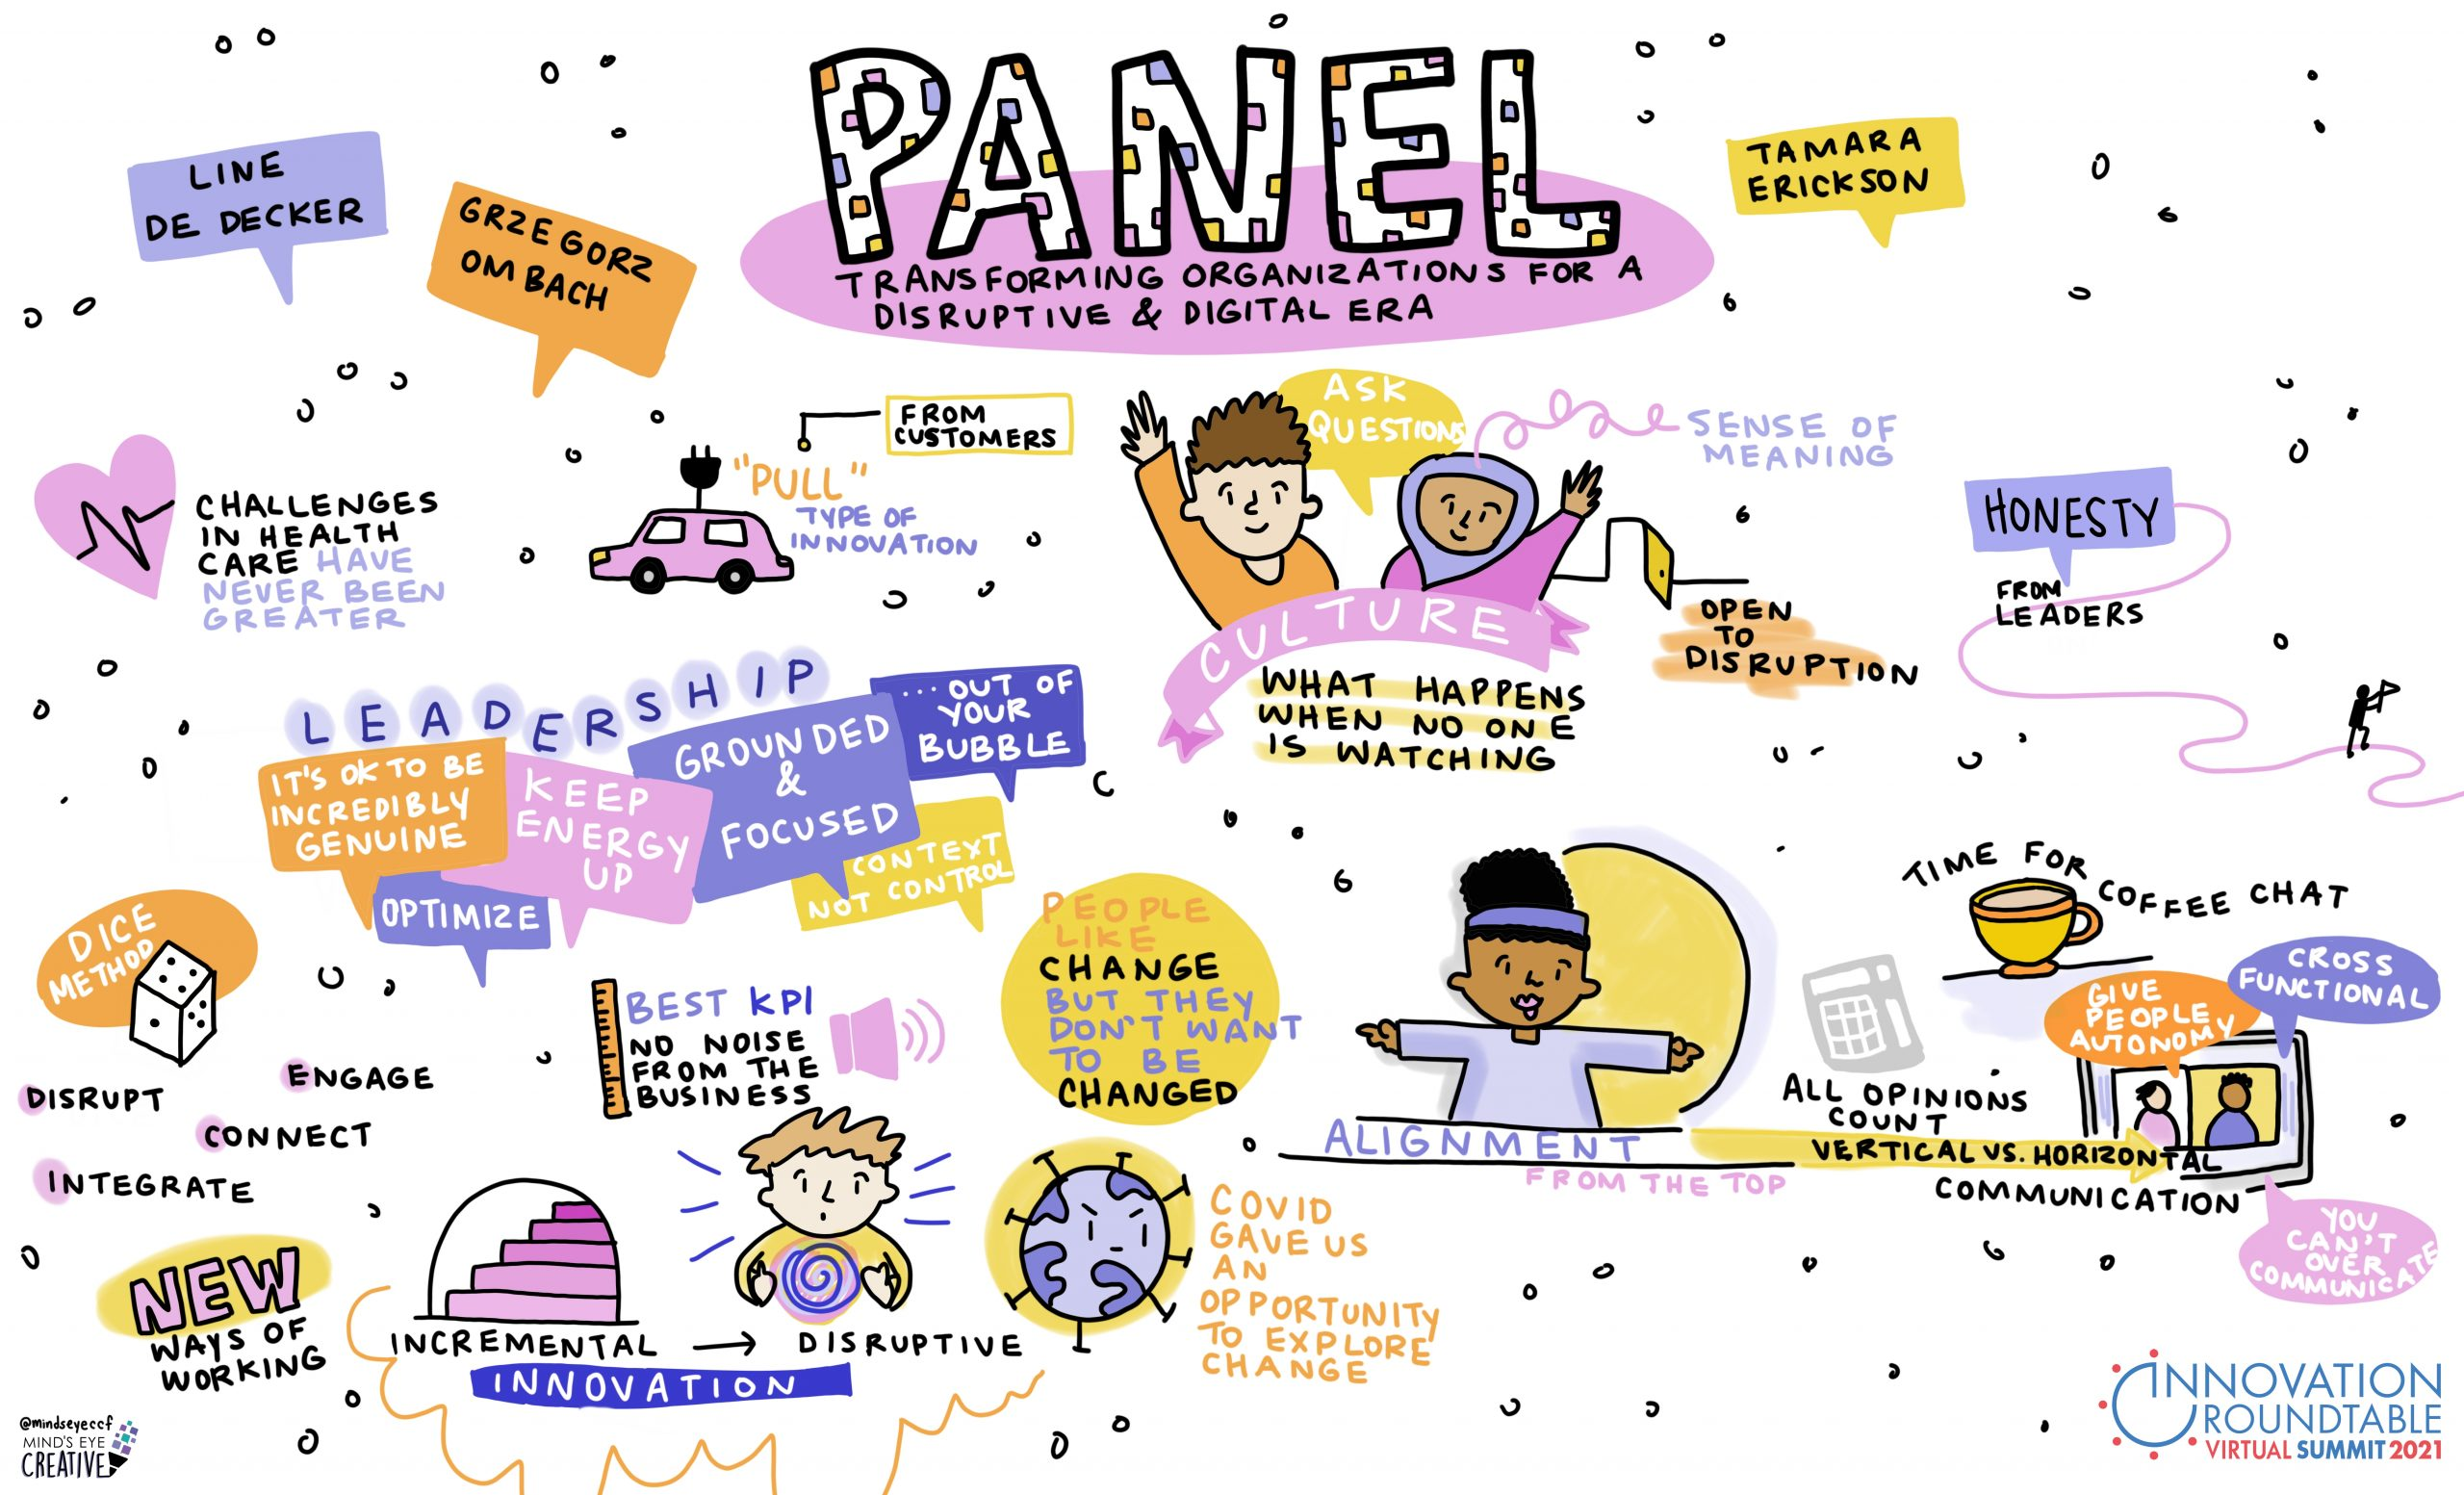 innovation roundtable graphic recording panel session